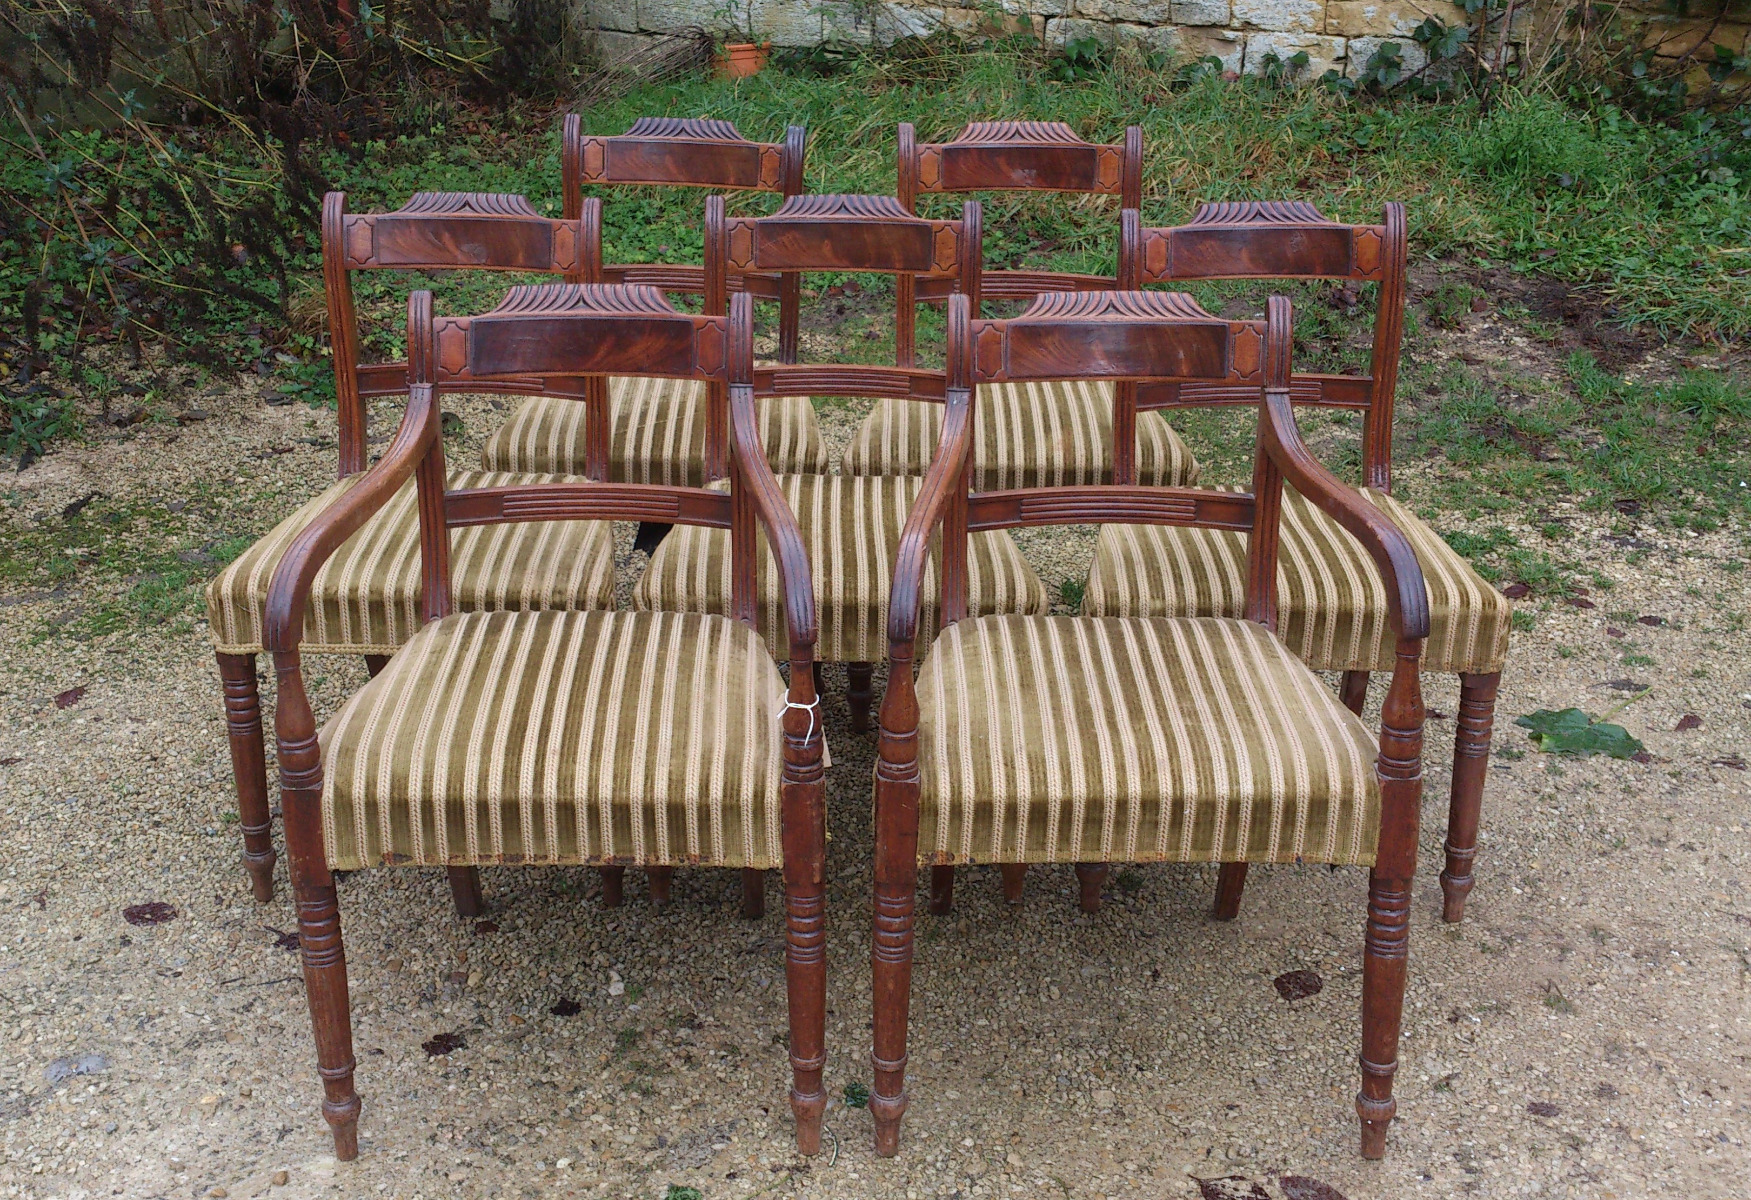 Antique regency dining chairs - Set Of 8 Regency Mahogany Antique Dining Chairs